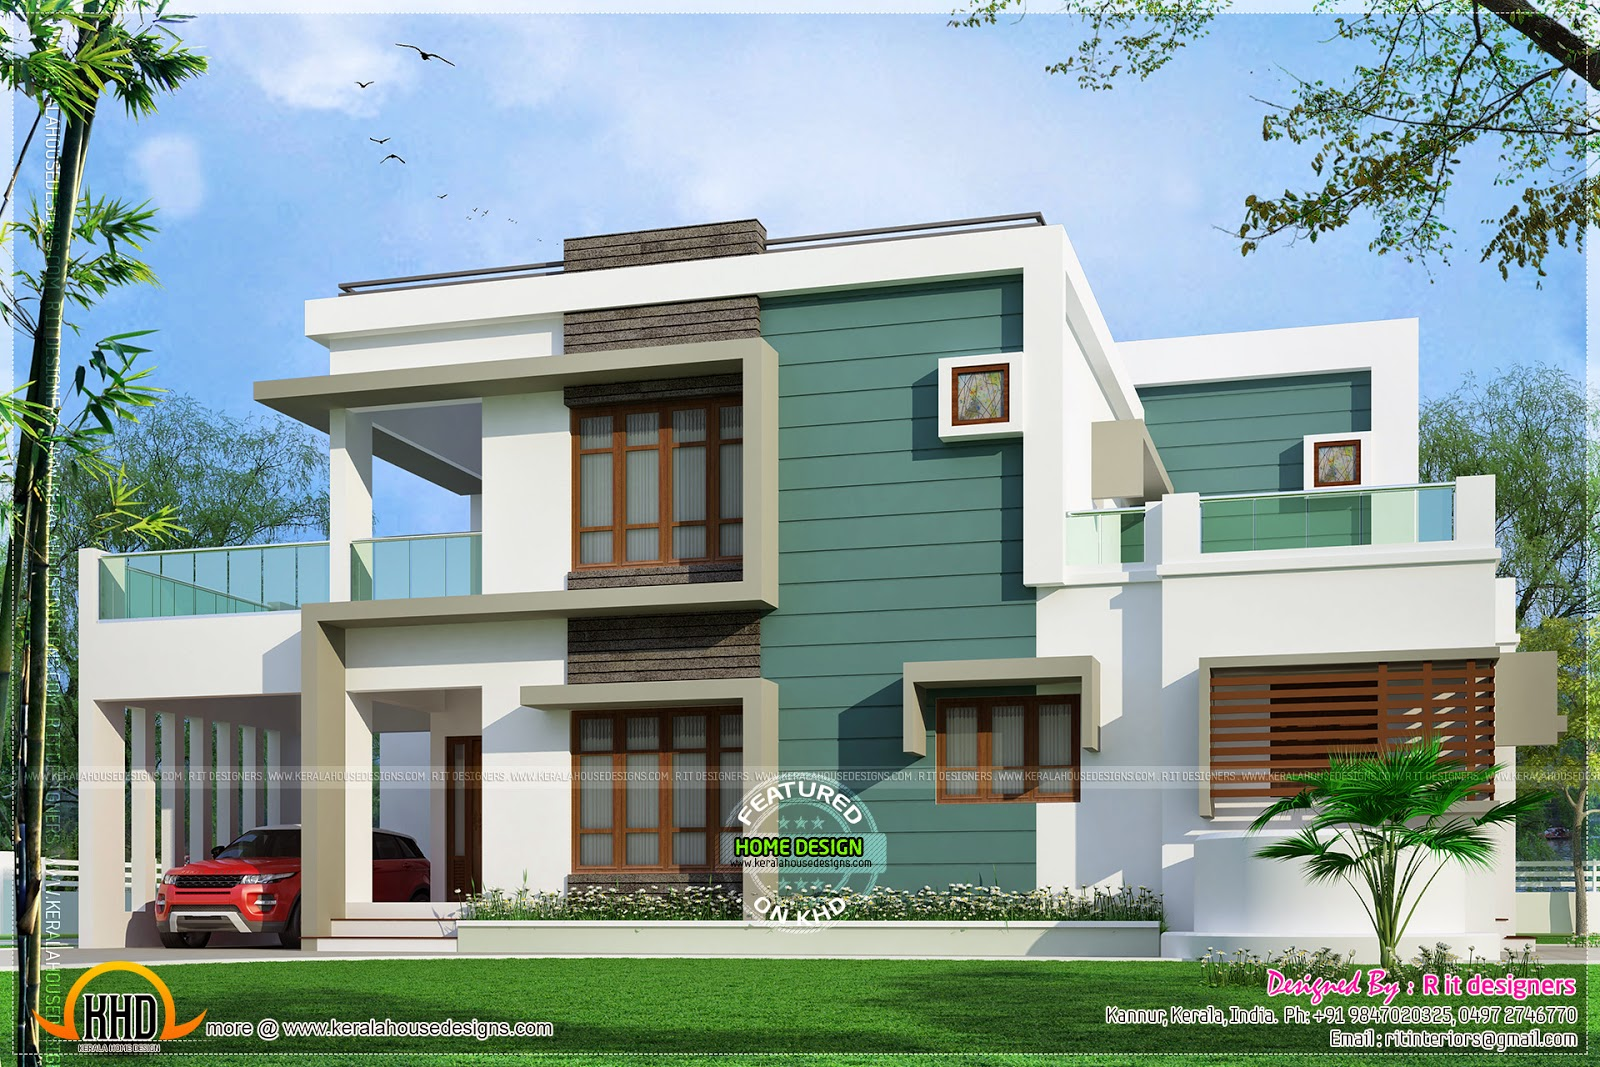 Kannur home design kerala home design and floor plans for Residential remodeling